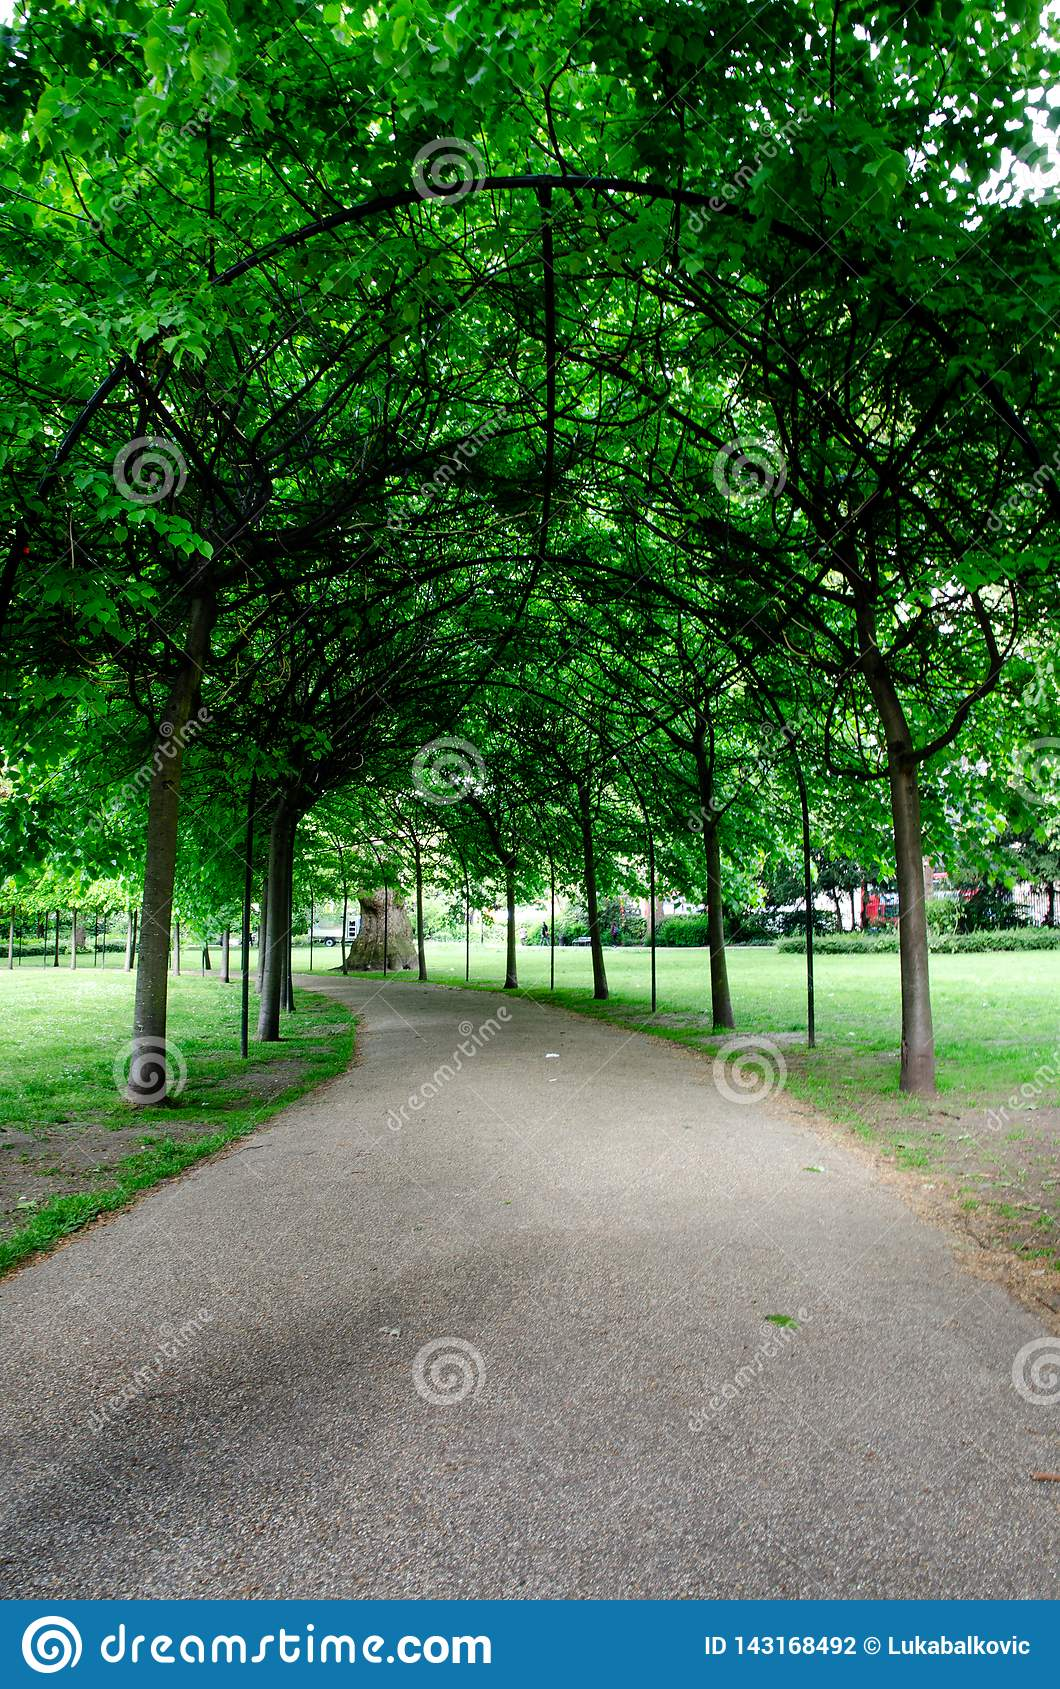 London city / England: Alley in Russell Square park